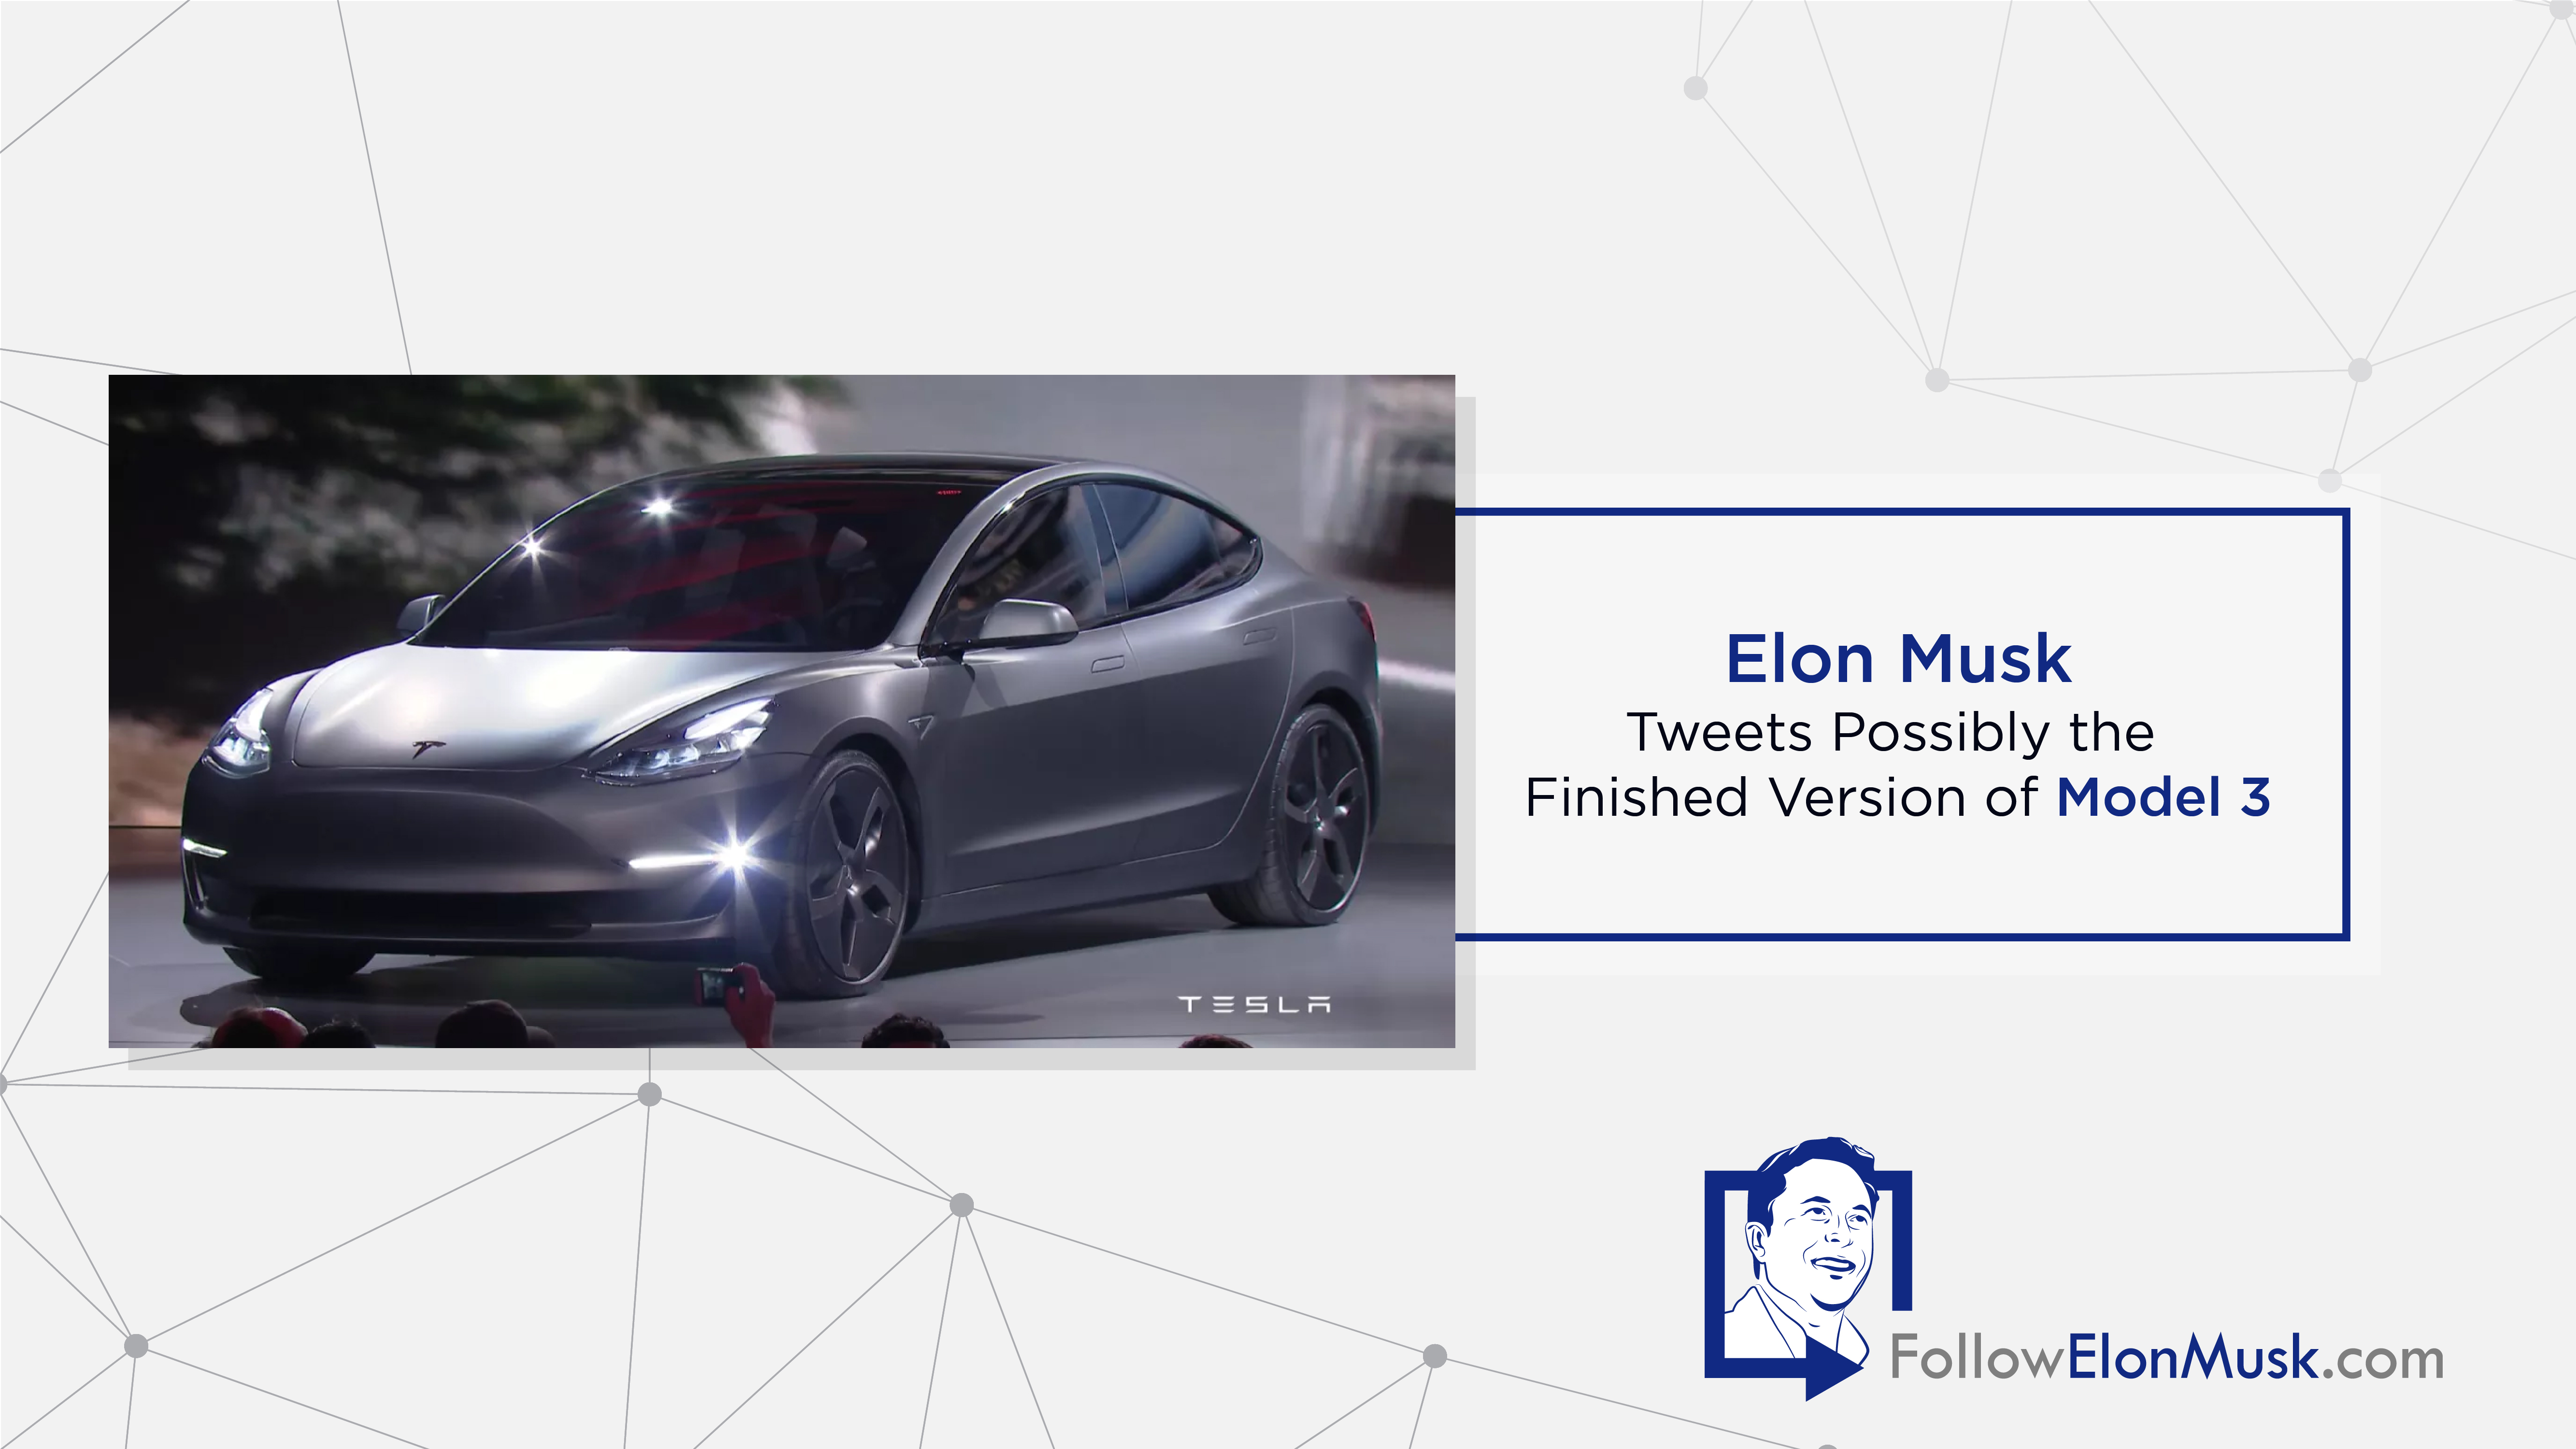 Elon Musk Tweets Possibly the Finished Version of Model 3